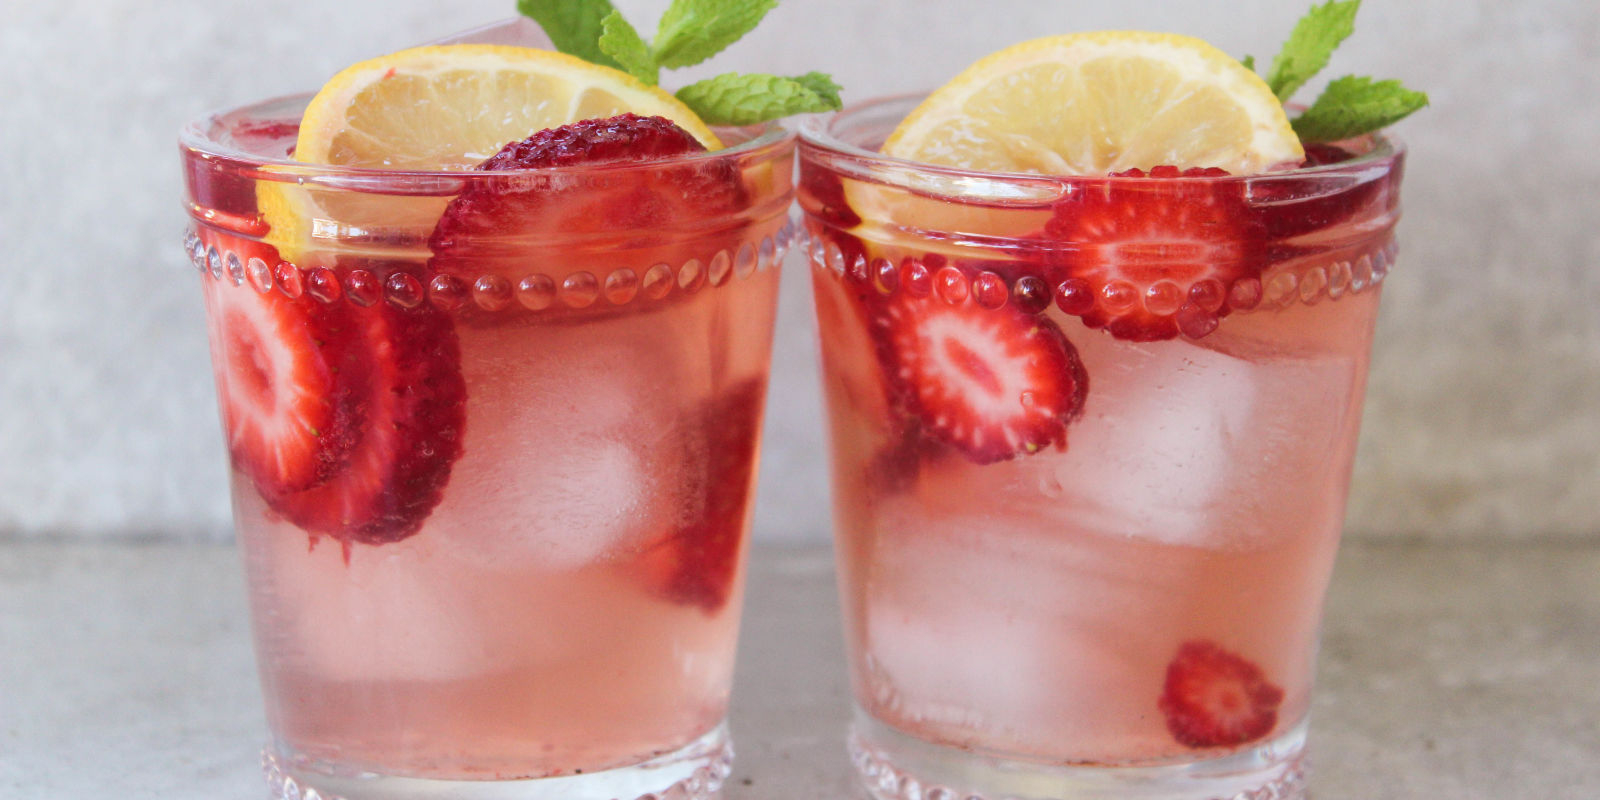 Spiked Strawberry Lemonade Recipe - Delish.com